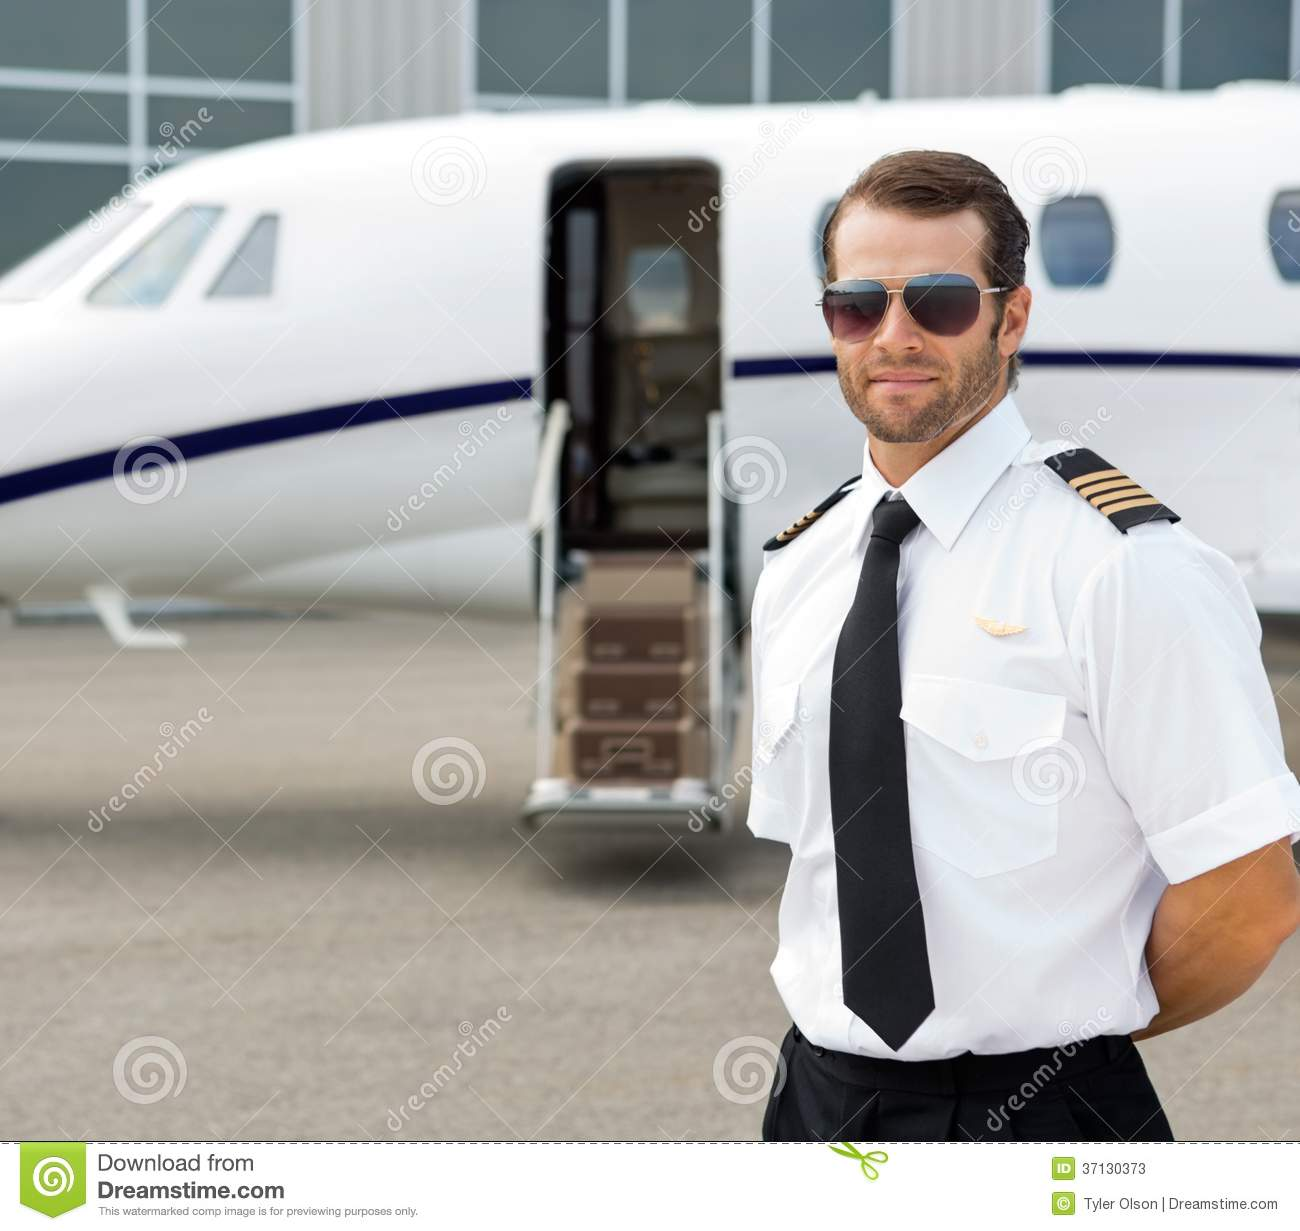 60682377e4 Confident Pilot Wearing Sunglasses Stock Image - Image of handsome ...